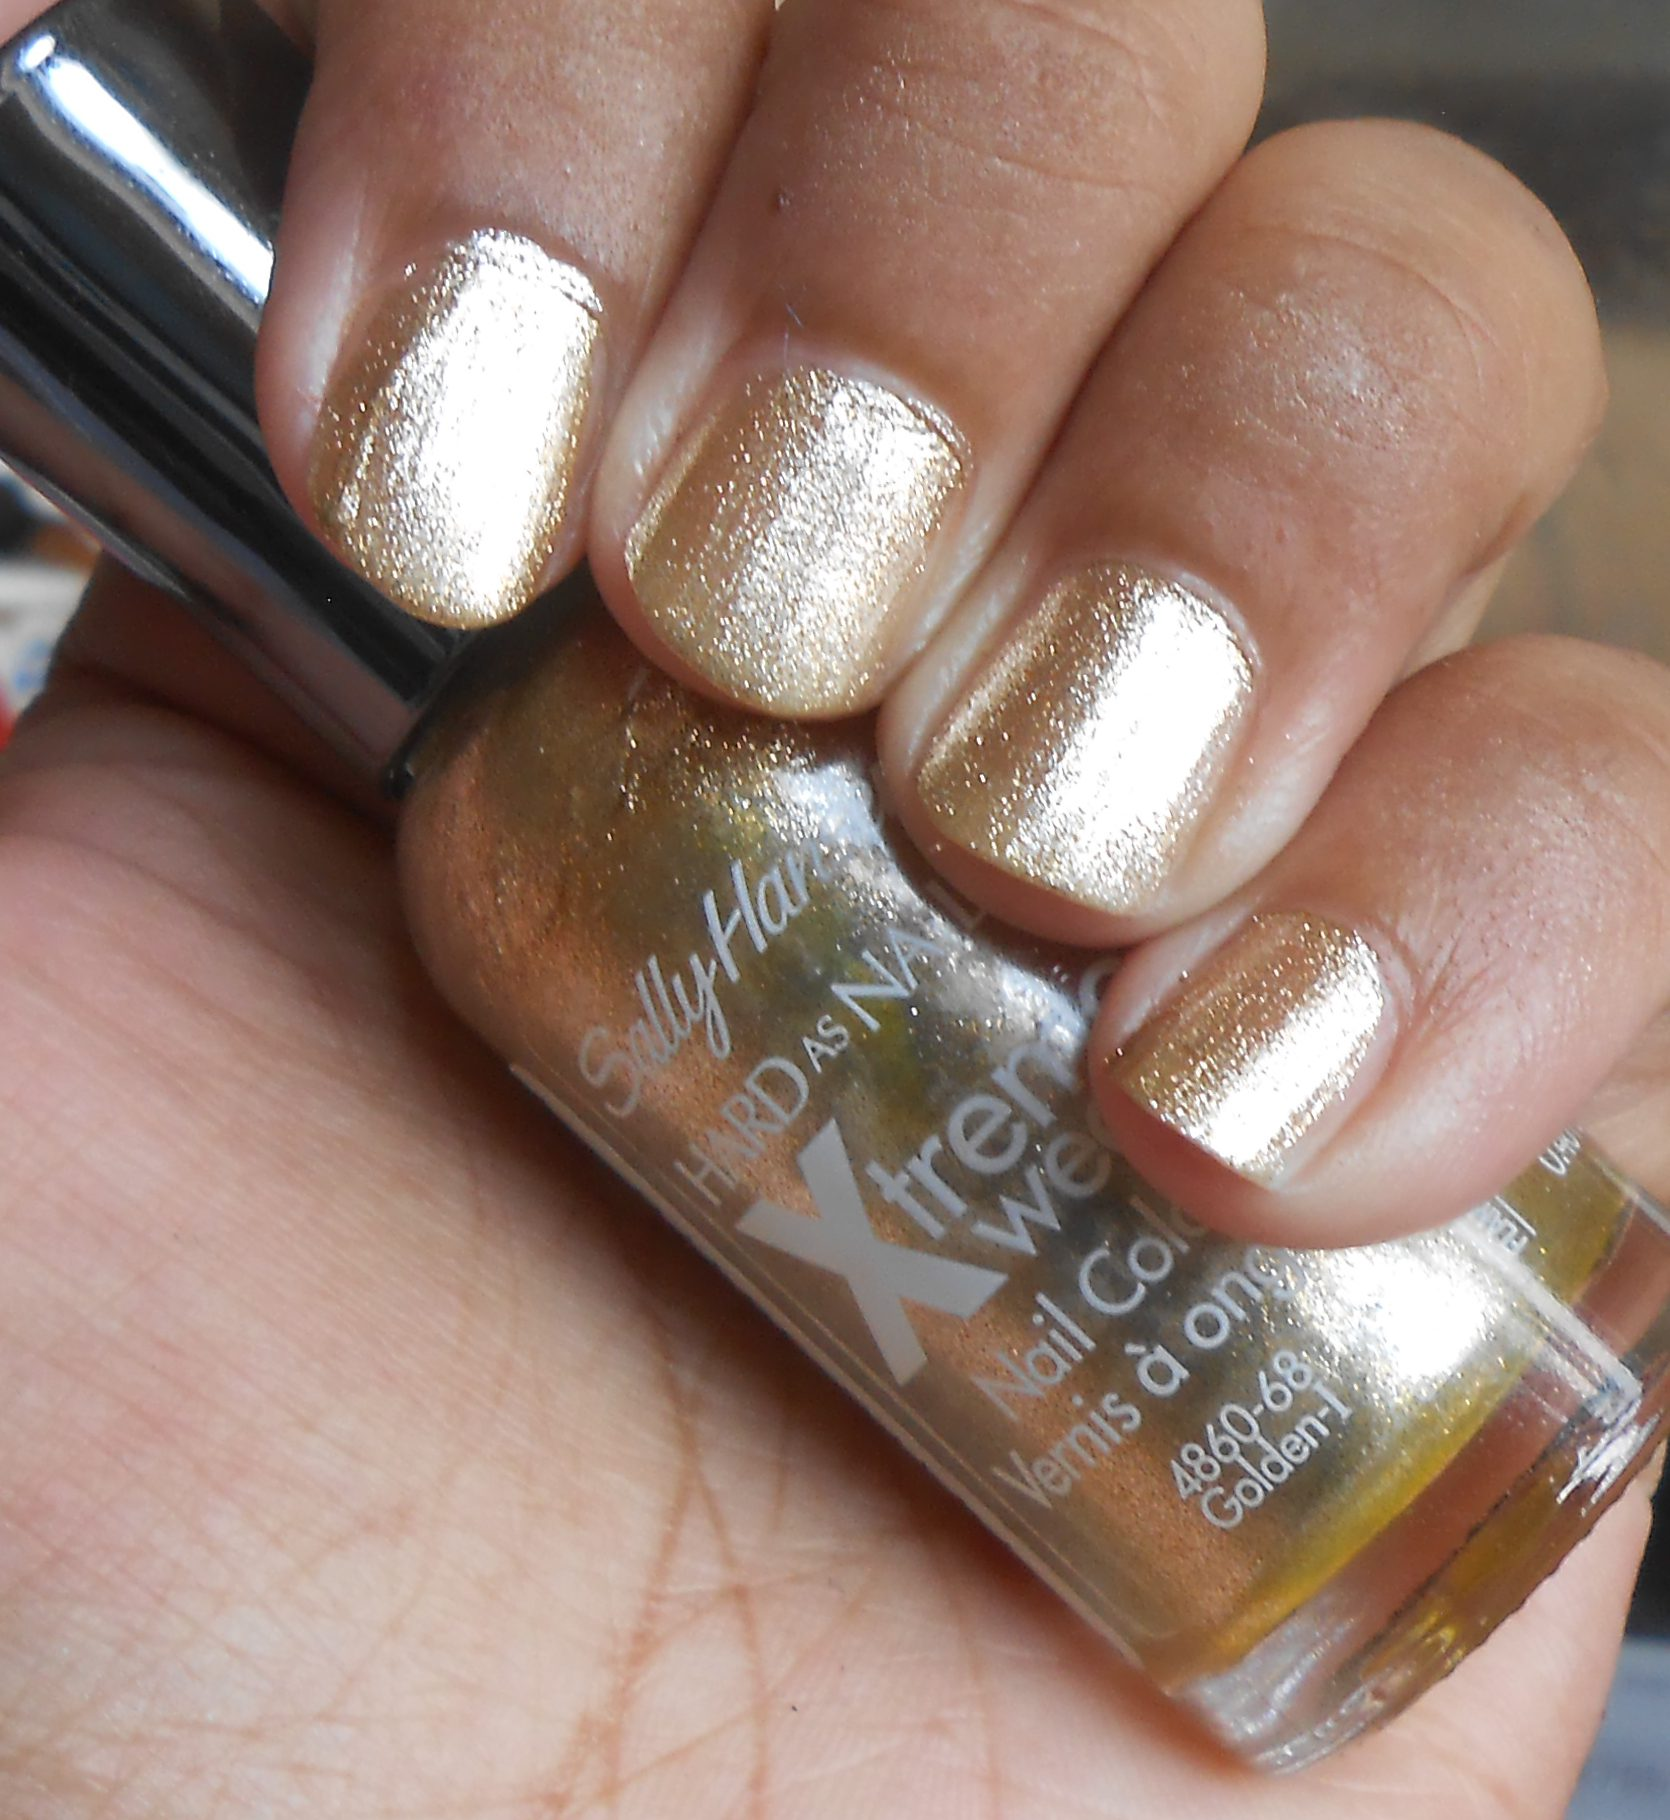 Sally Hansen Hard As Nails Xtreme Wear Nail Color in Golden-I